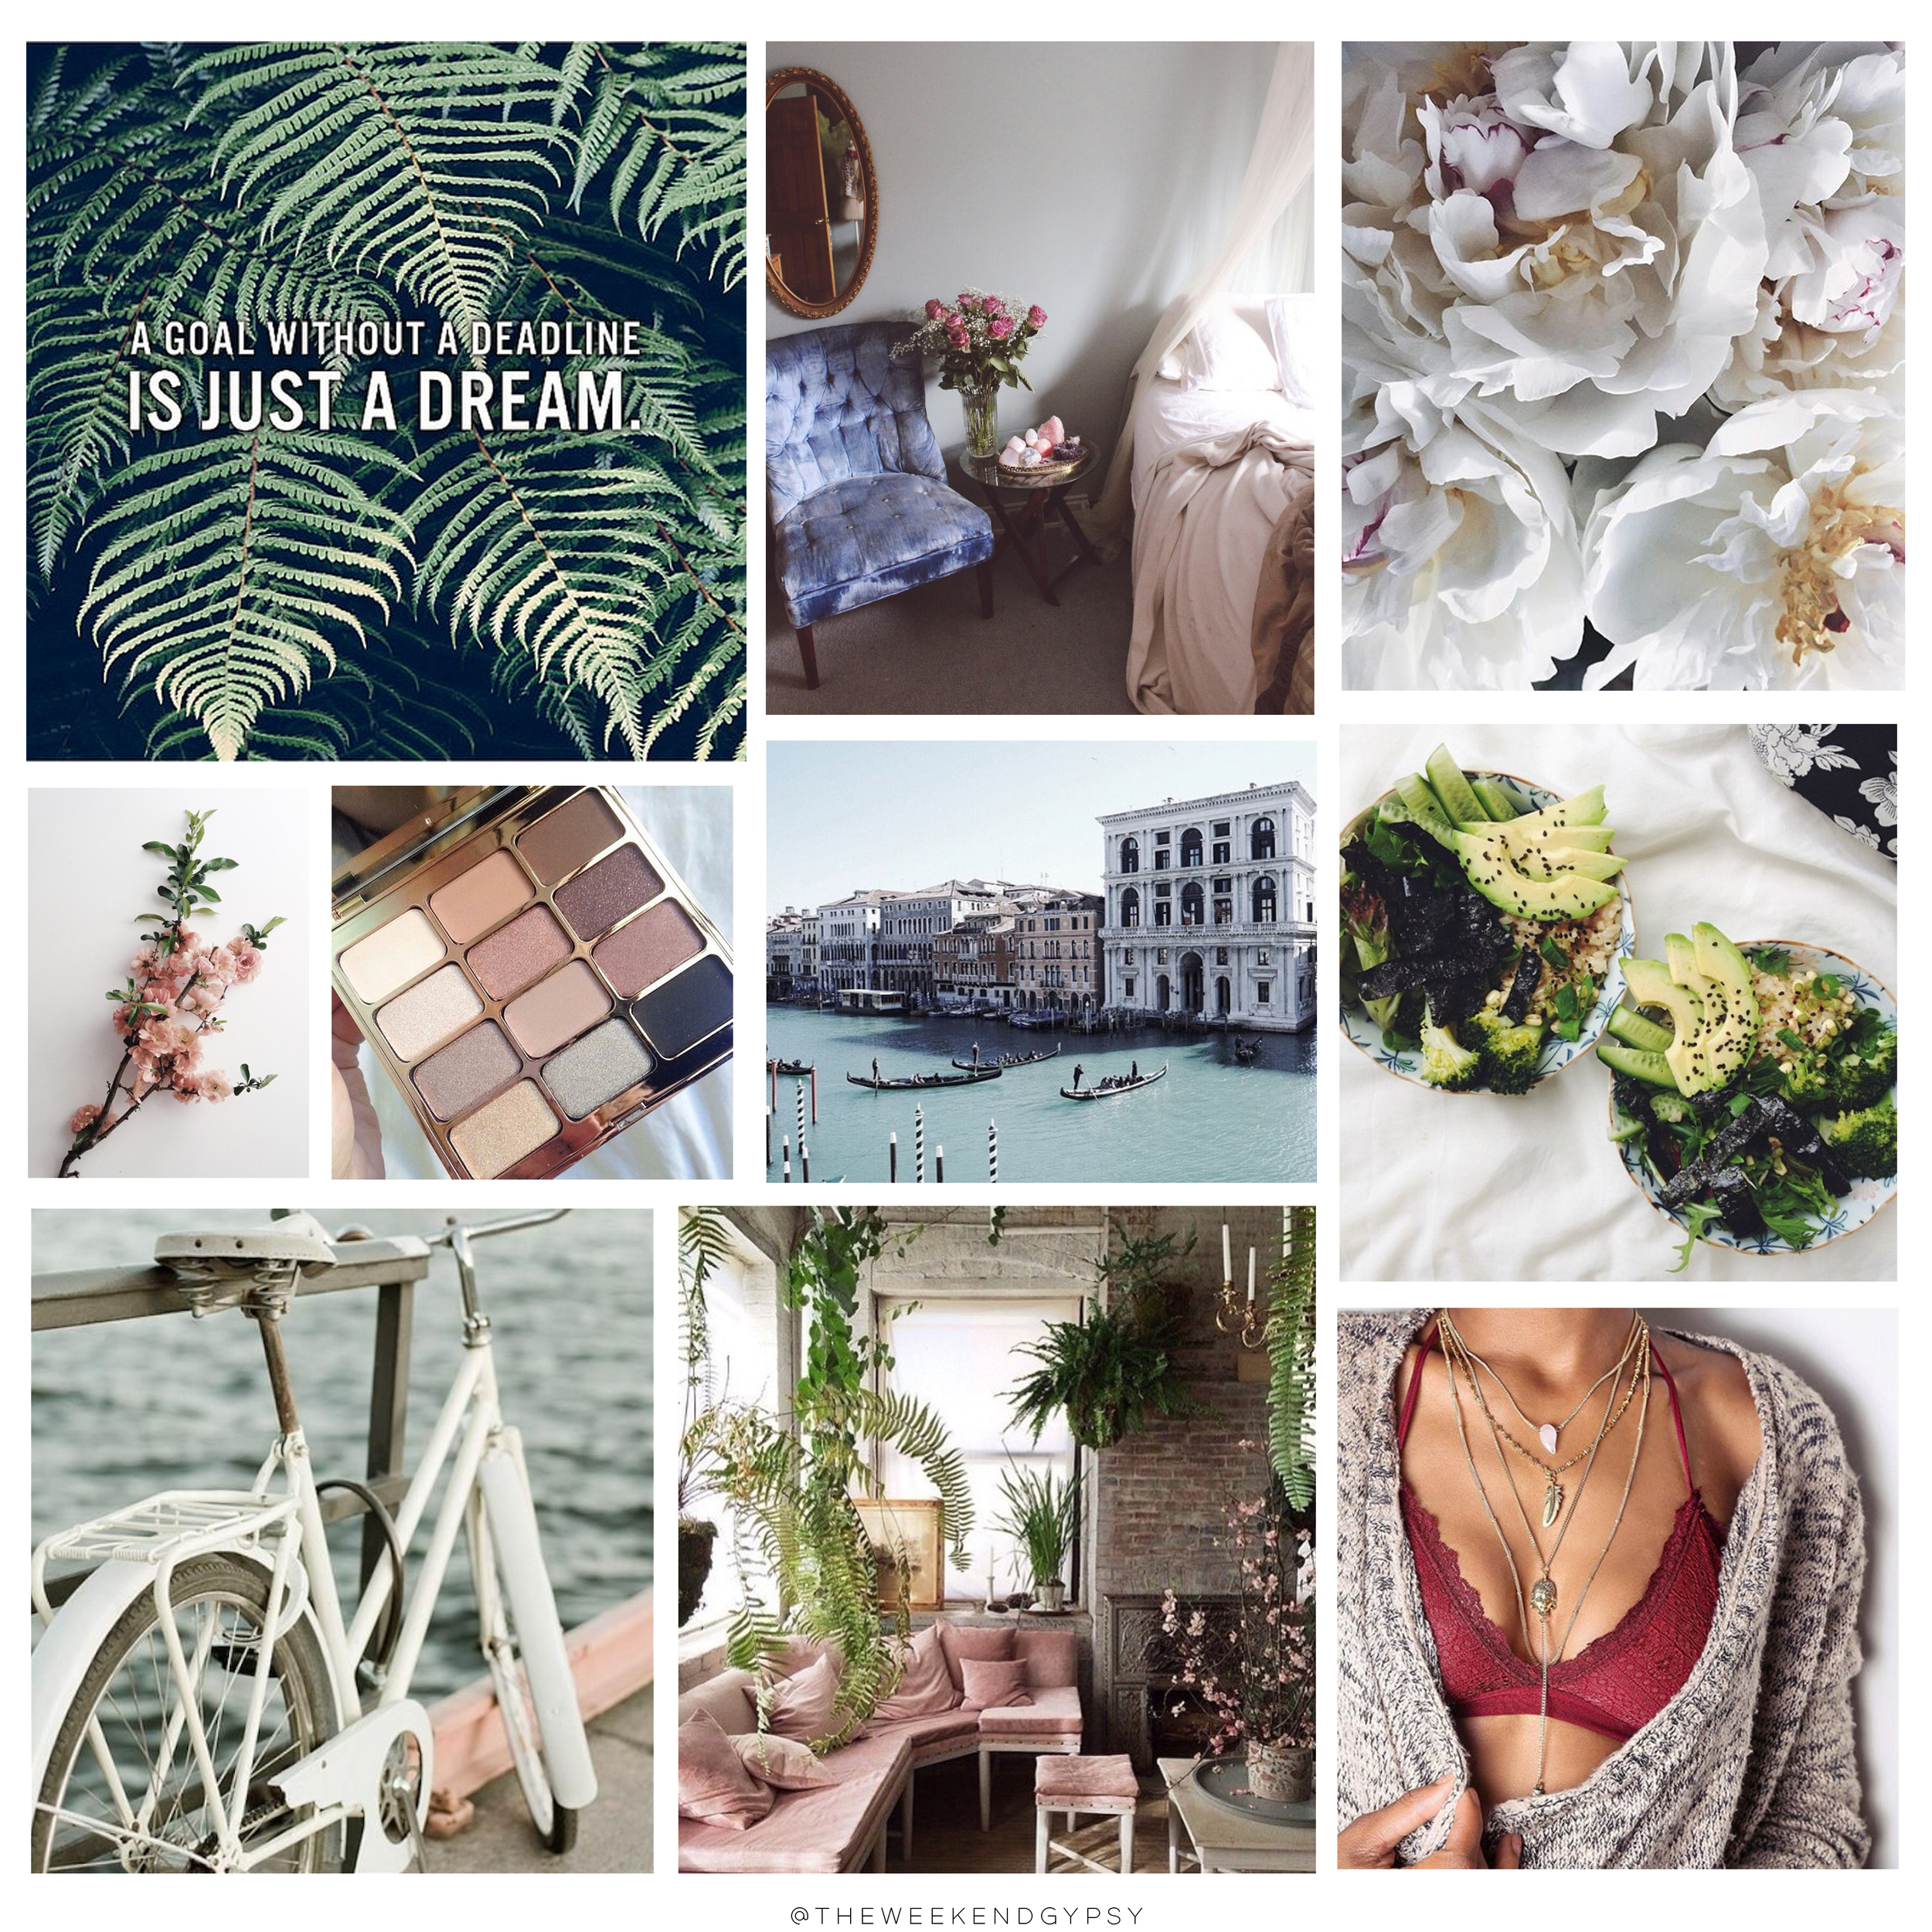 monday mood inspiration love girl tumblr pinterest fashion style food blog marble trend travel wanderlust beautiful home decor interior design accessories lifestyle makeup diy quote